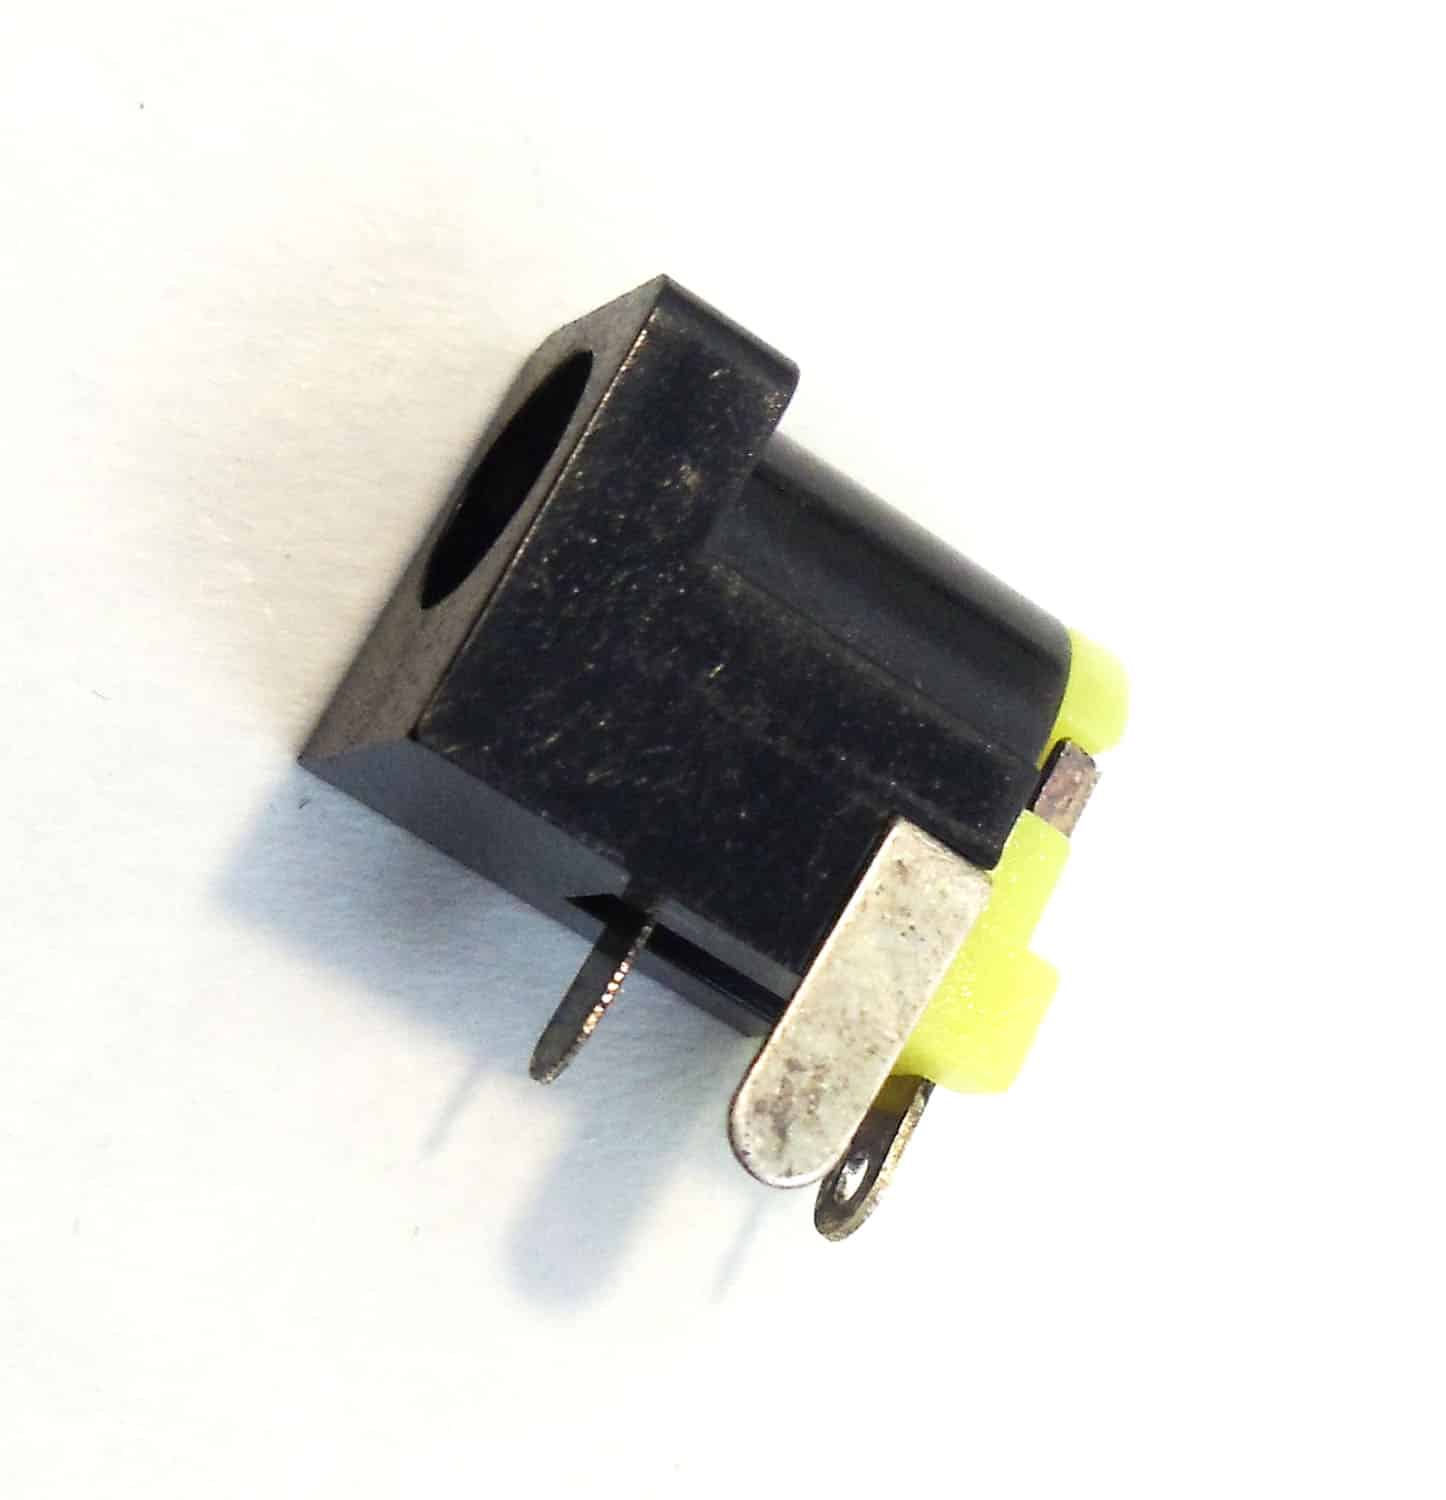 BJKY0234001 - Uniden Replacement Power Jack For BC760XLT Scanner